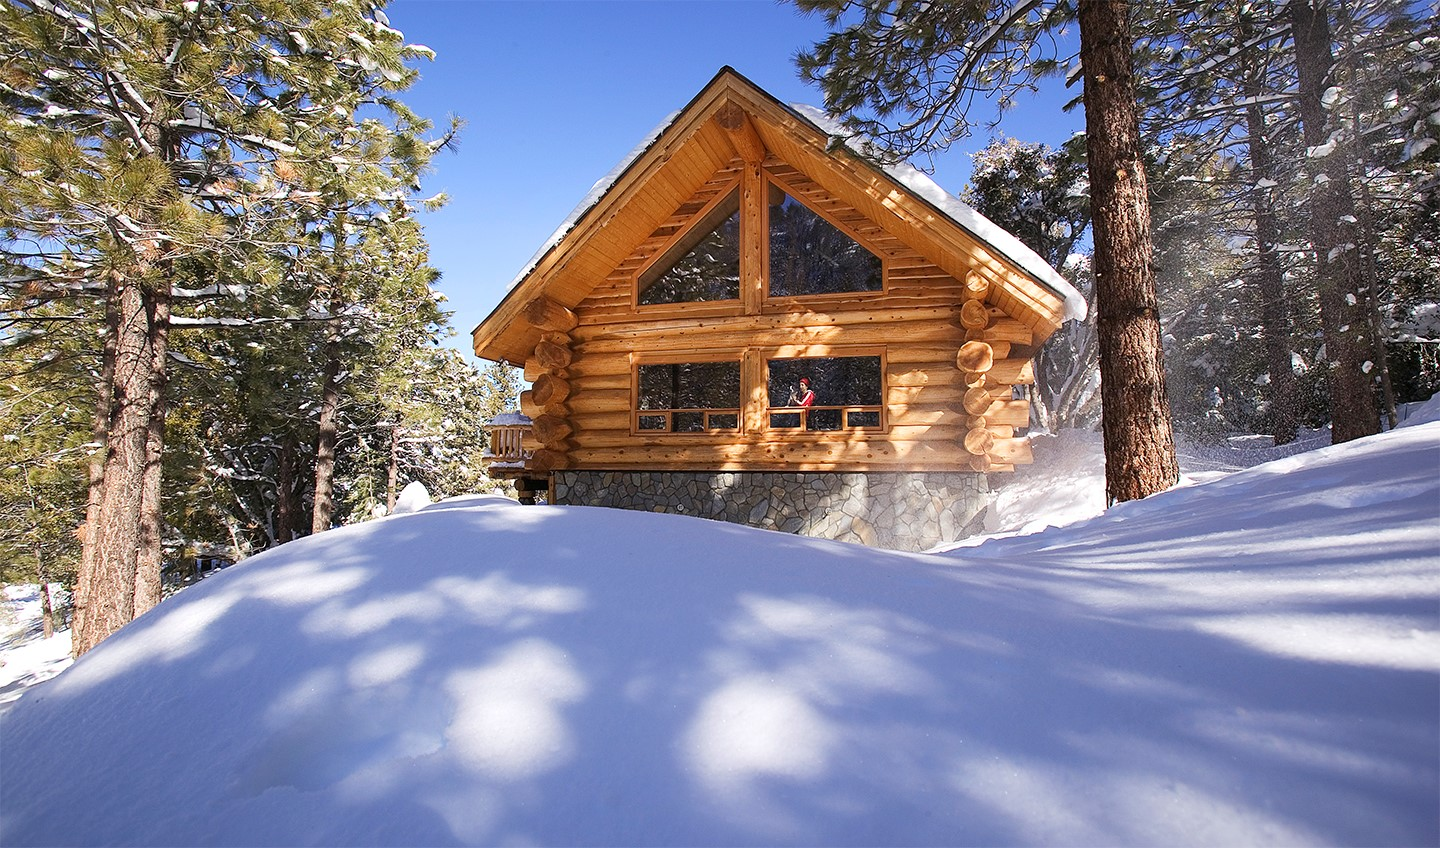 for sale luxury log cabin vacation rental near los. Black Bedroom Furniture Sets. Home Design Ideas